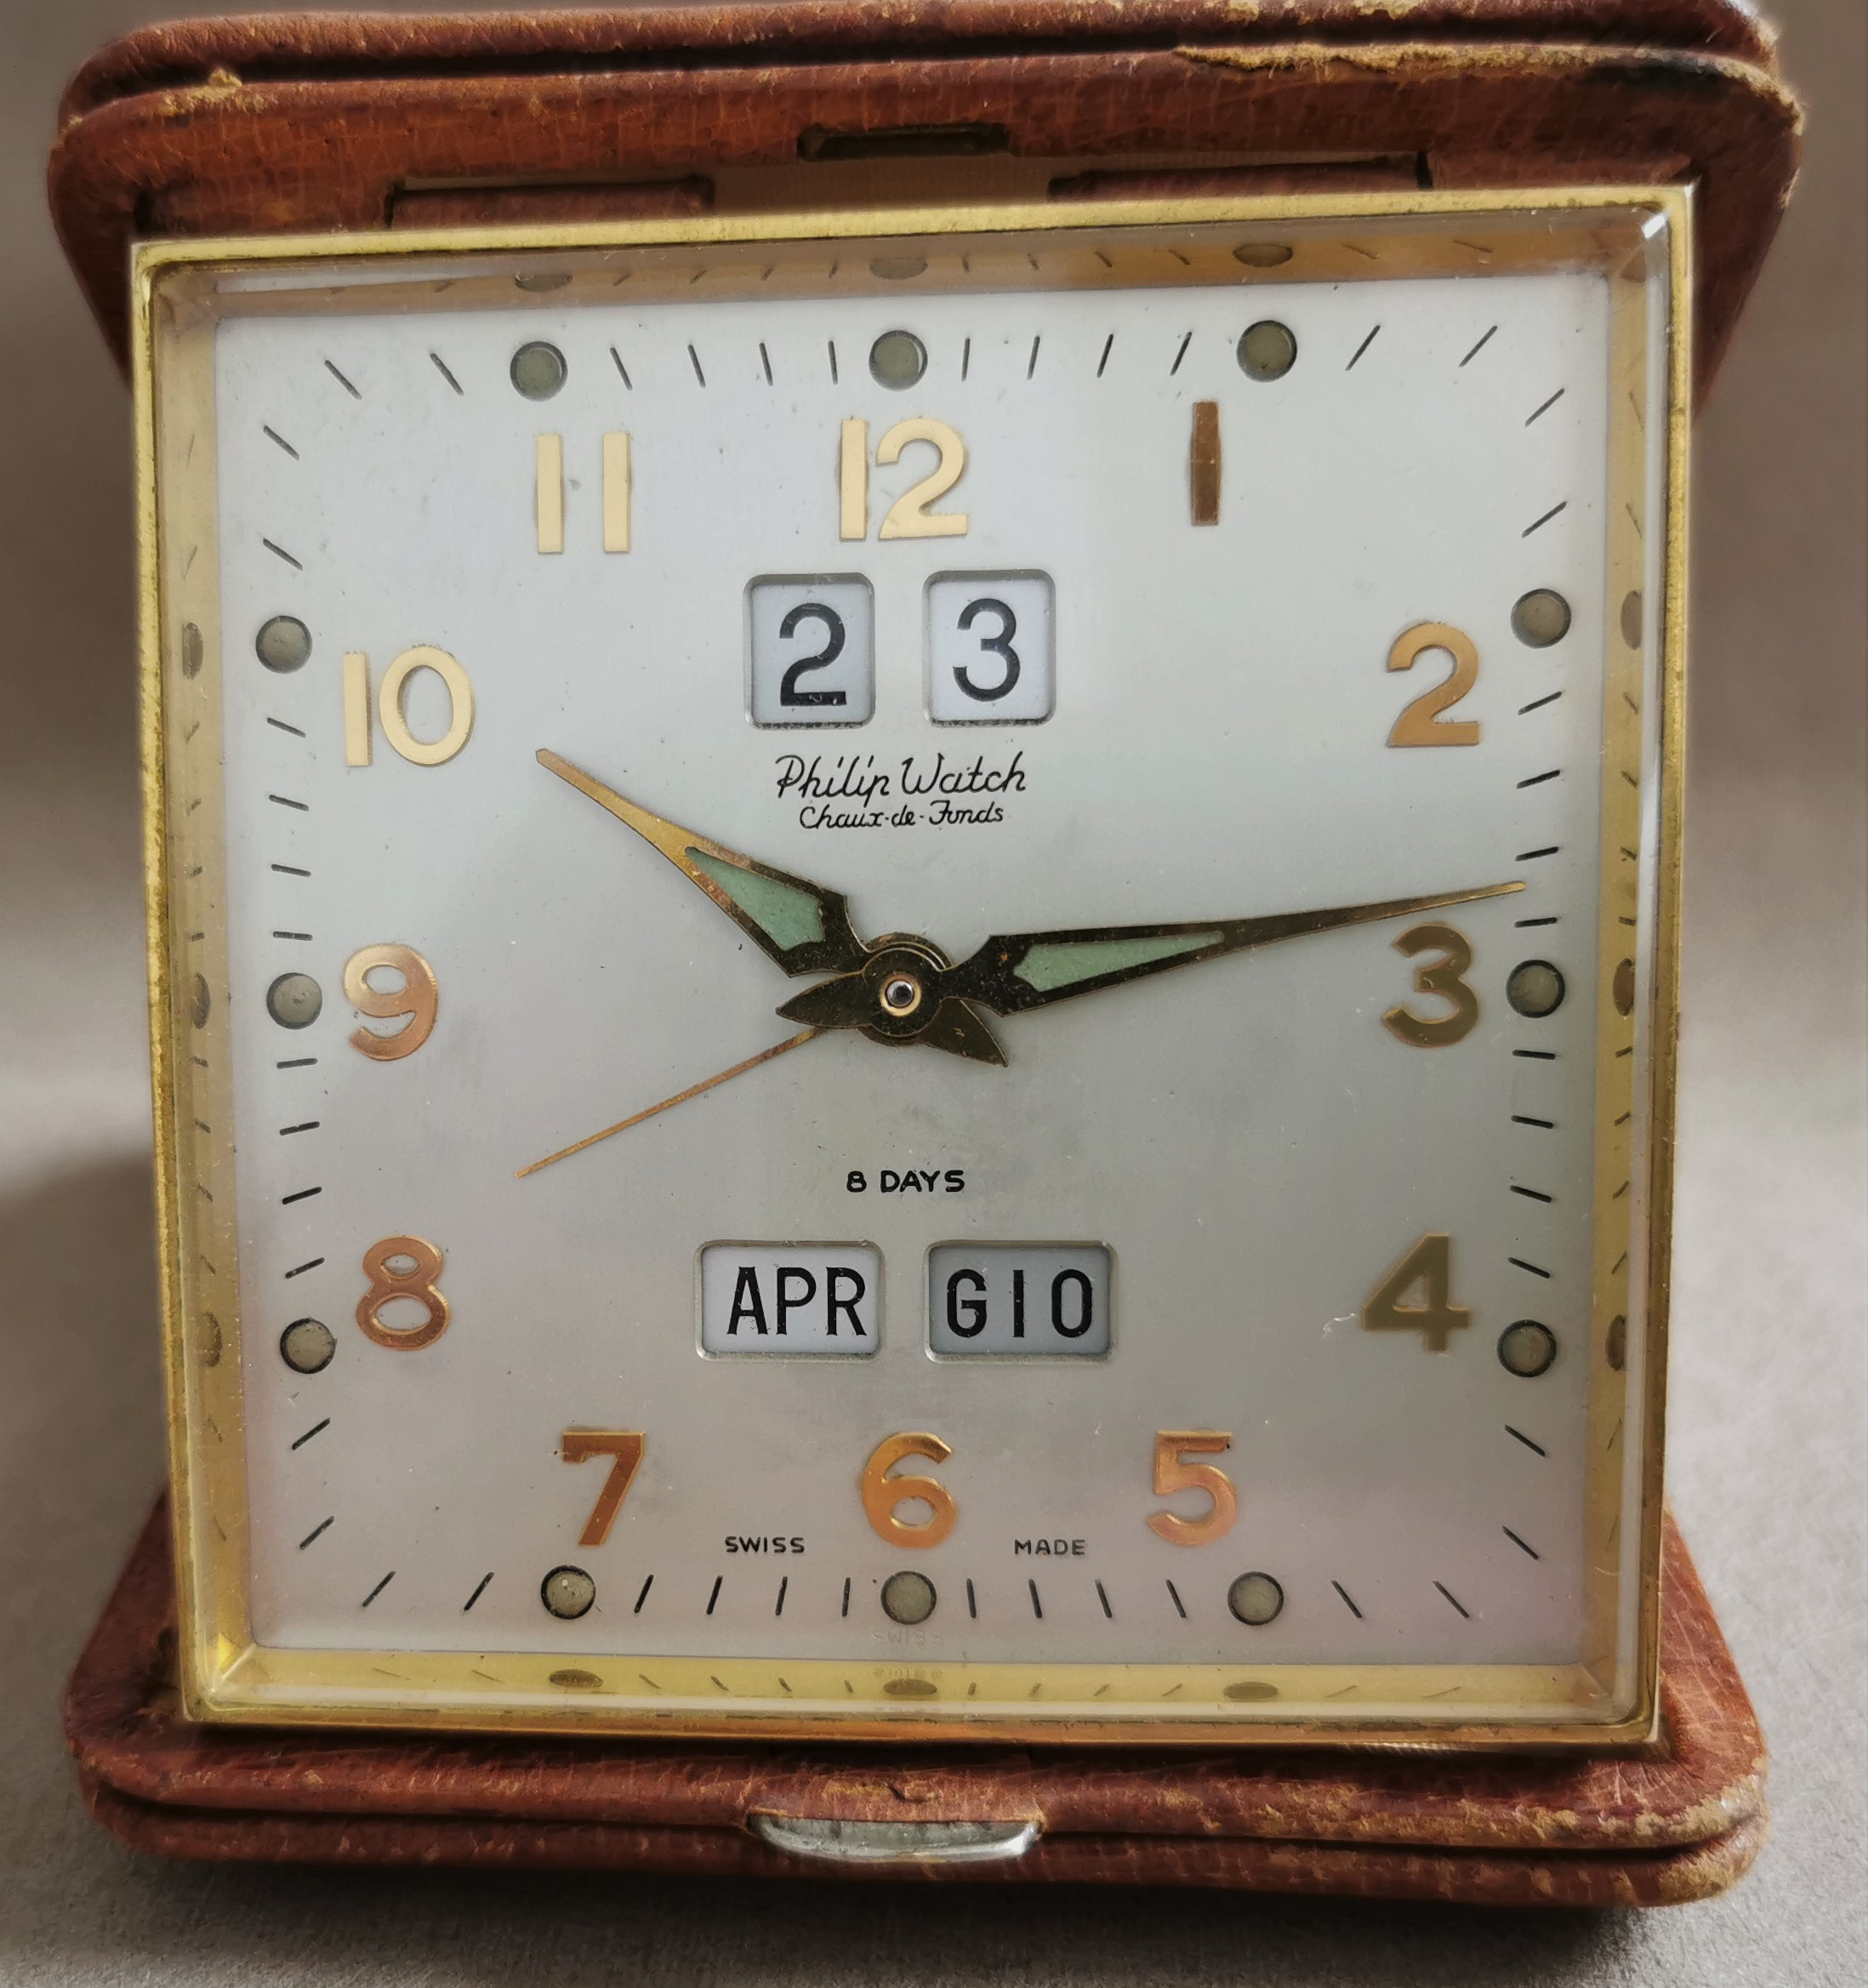 Philip Watch Watch Travel clock complete calendar mechanical 8 days - very rare | San Giorgio a Cremano